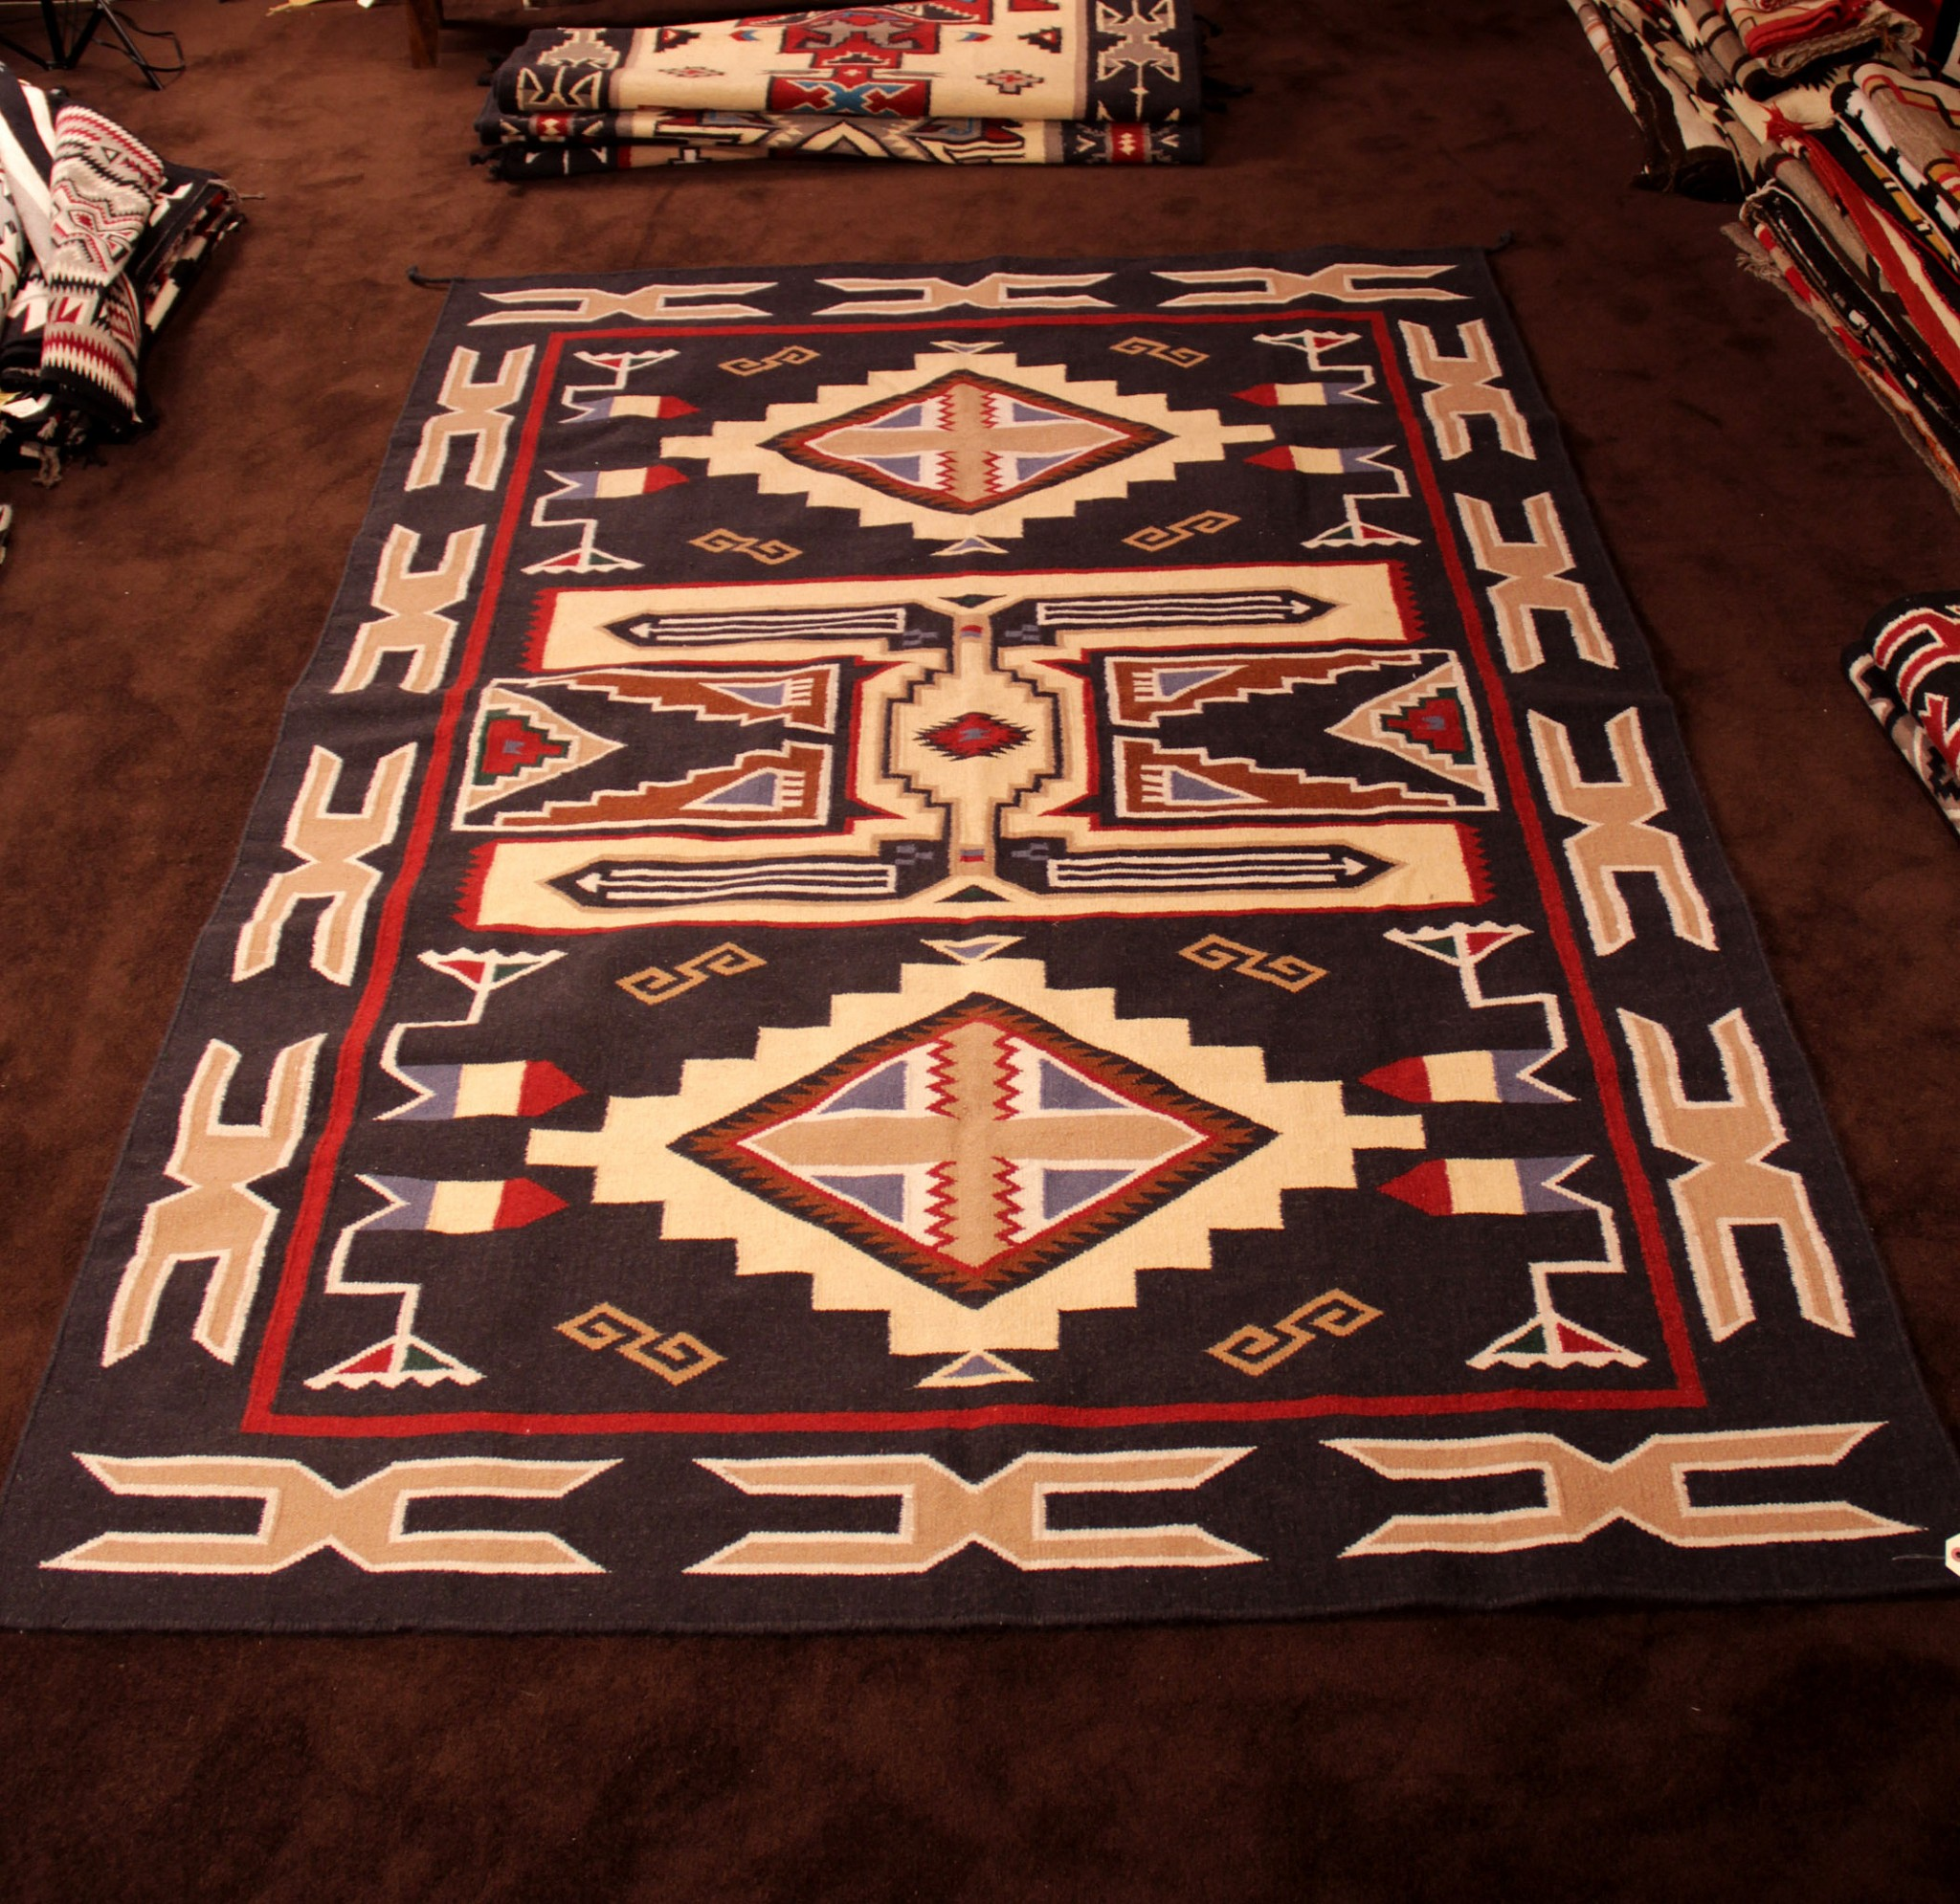 designs regarding indian your antique design residence rug patterns native american navajo rugs fascinating